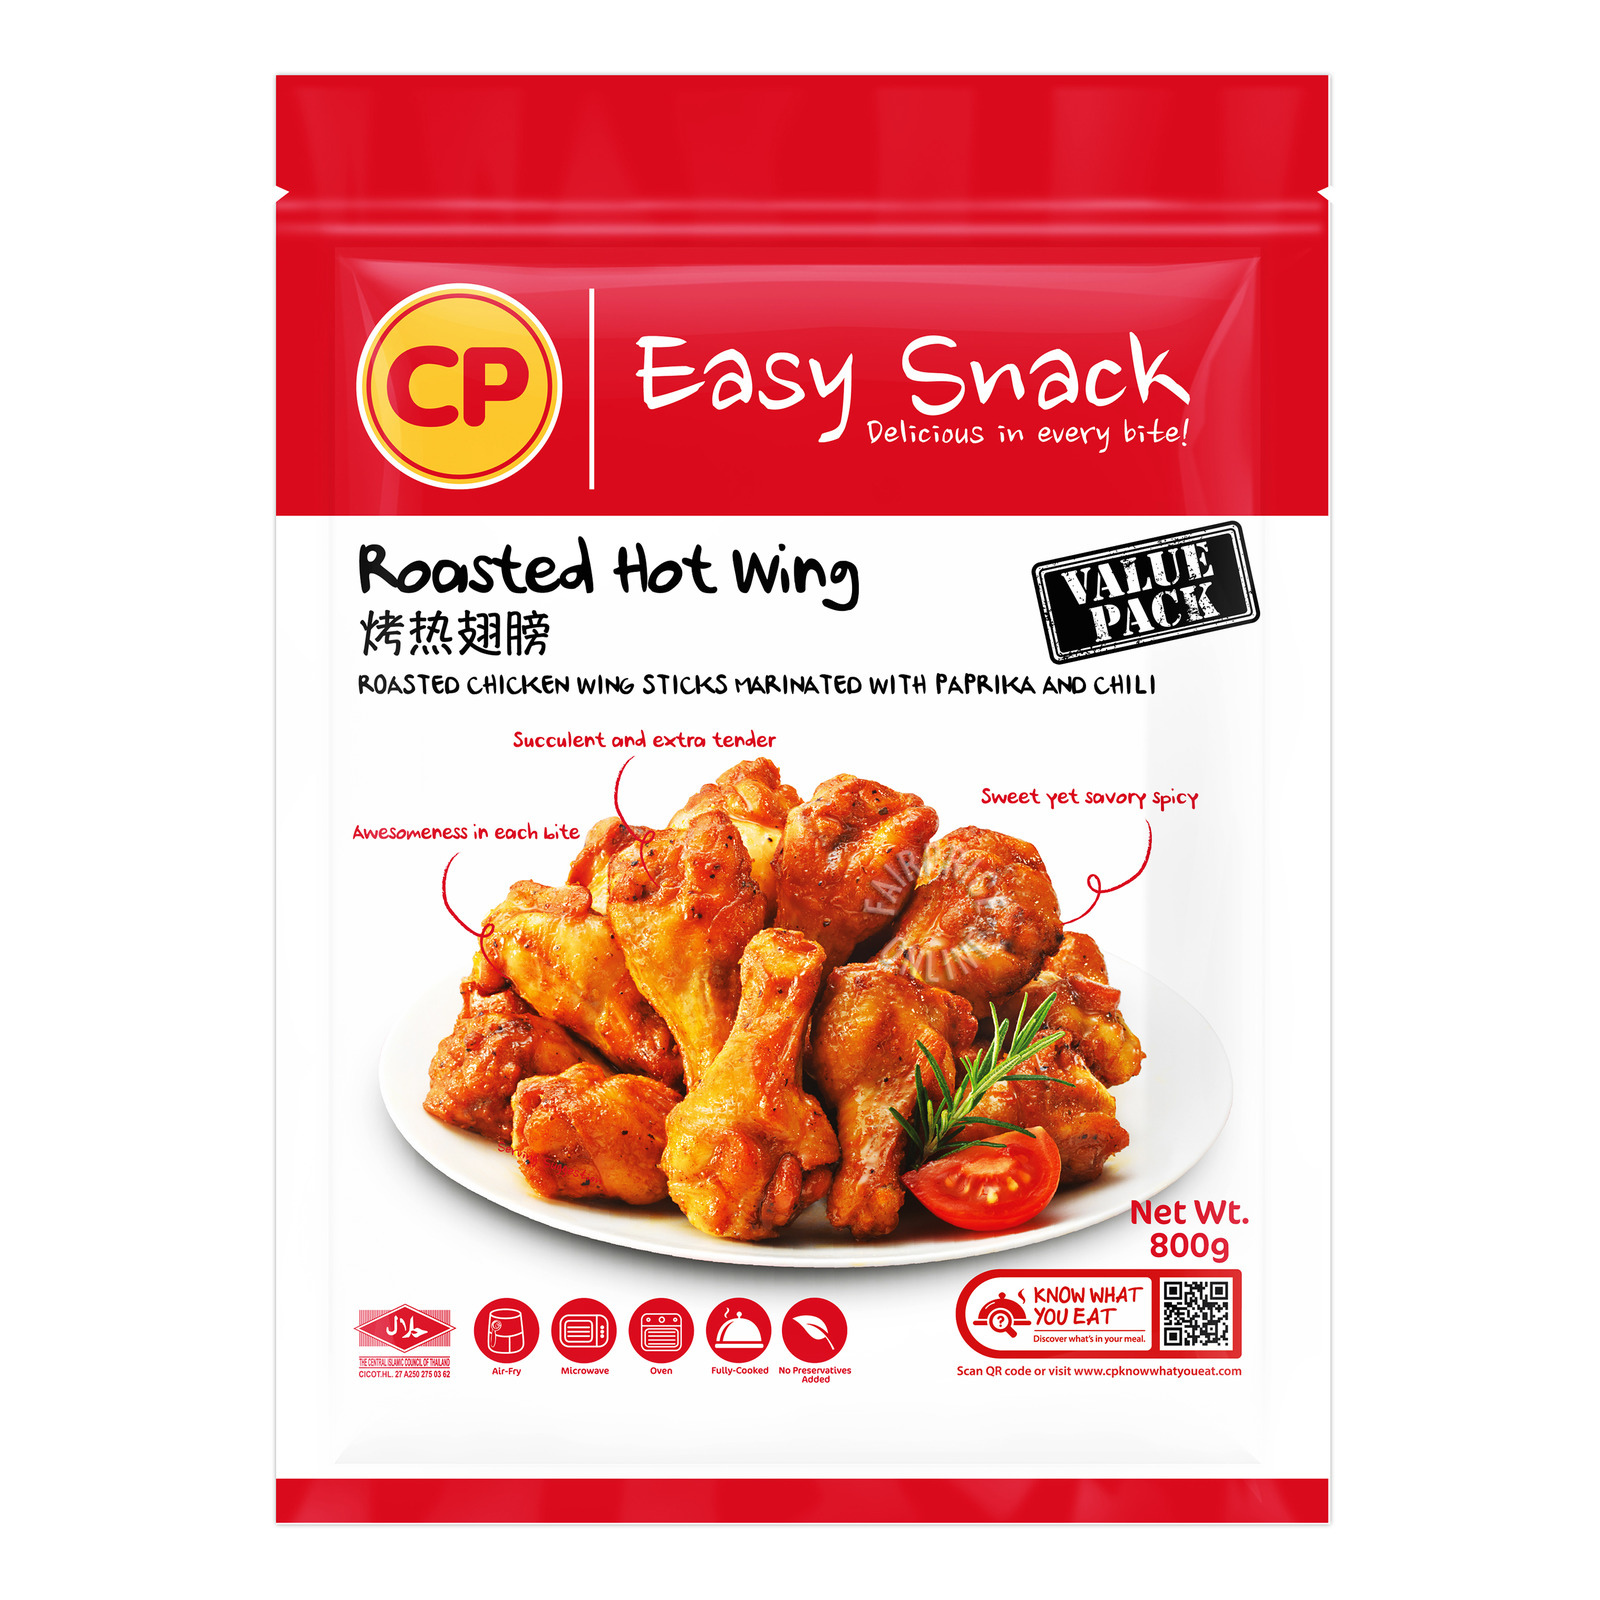 CP Easy Snack - Roasted Hot Wing